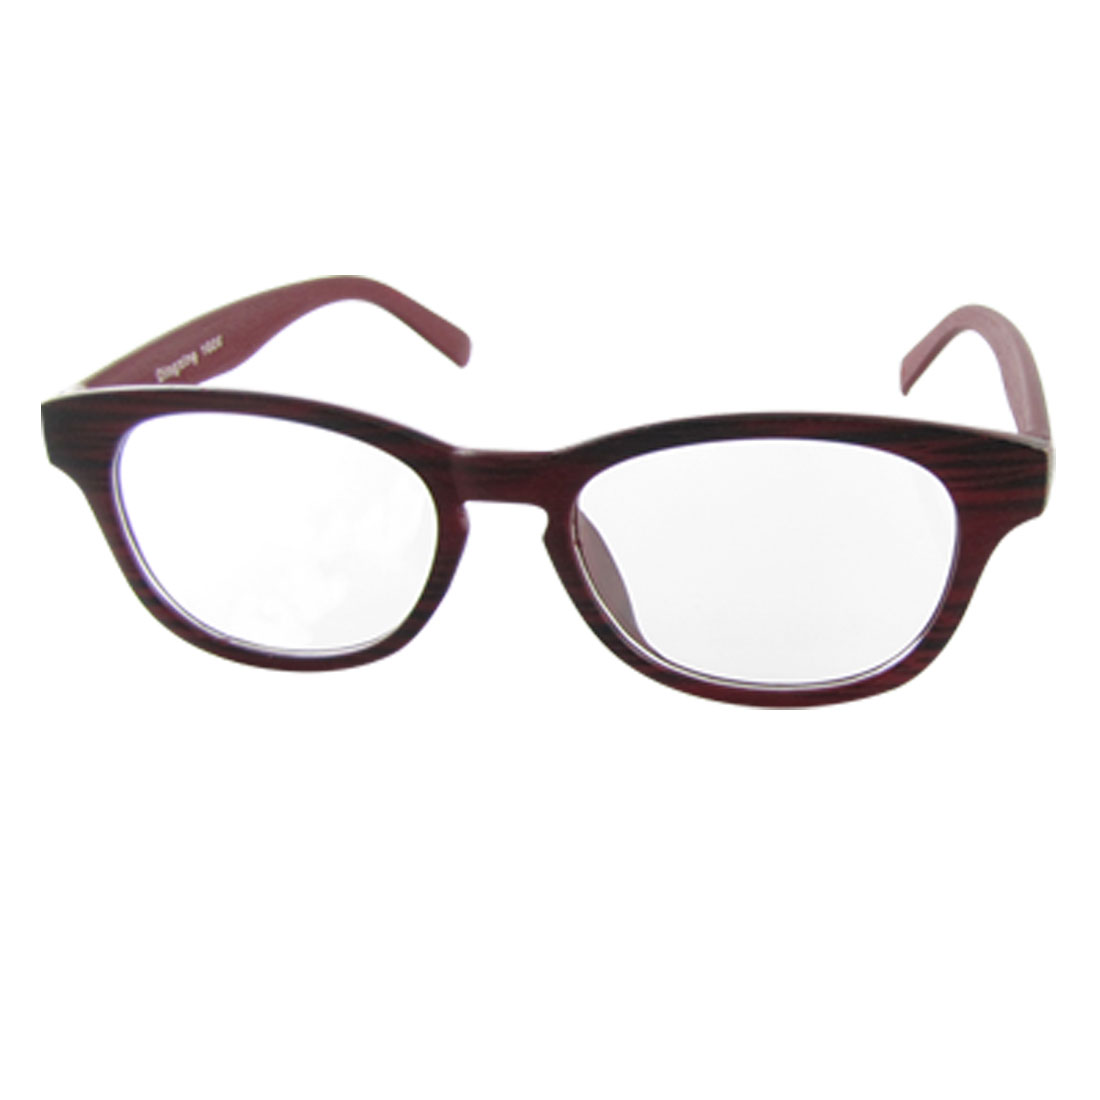 Dark Red Grain Plastic Full-rim UV Protection Glasses